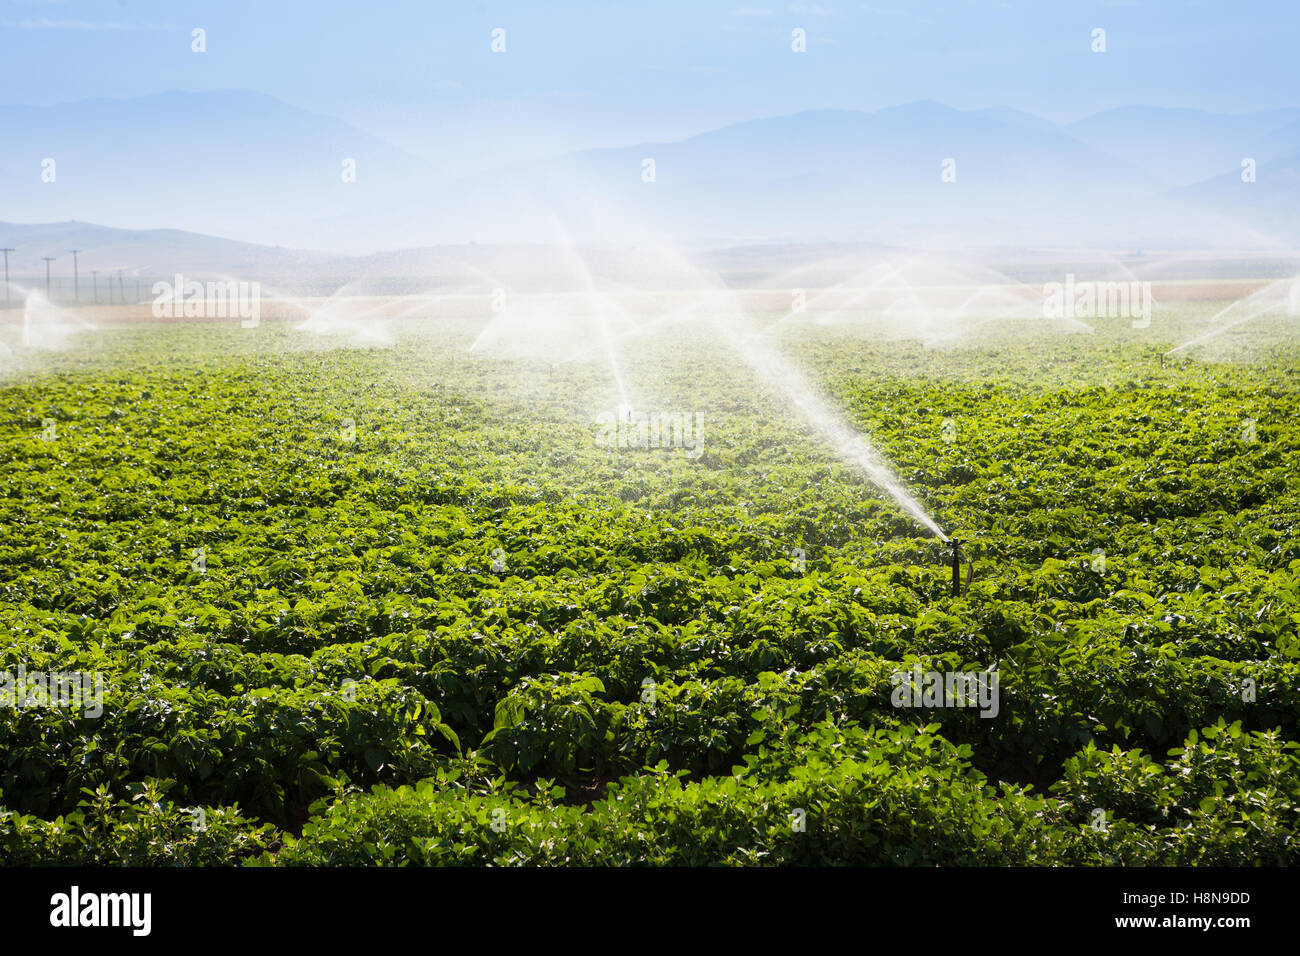 Fields being irrigated - Stock Image